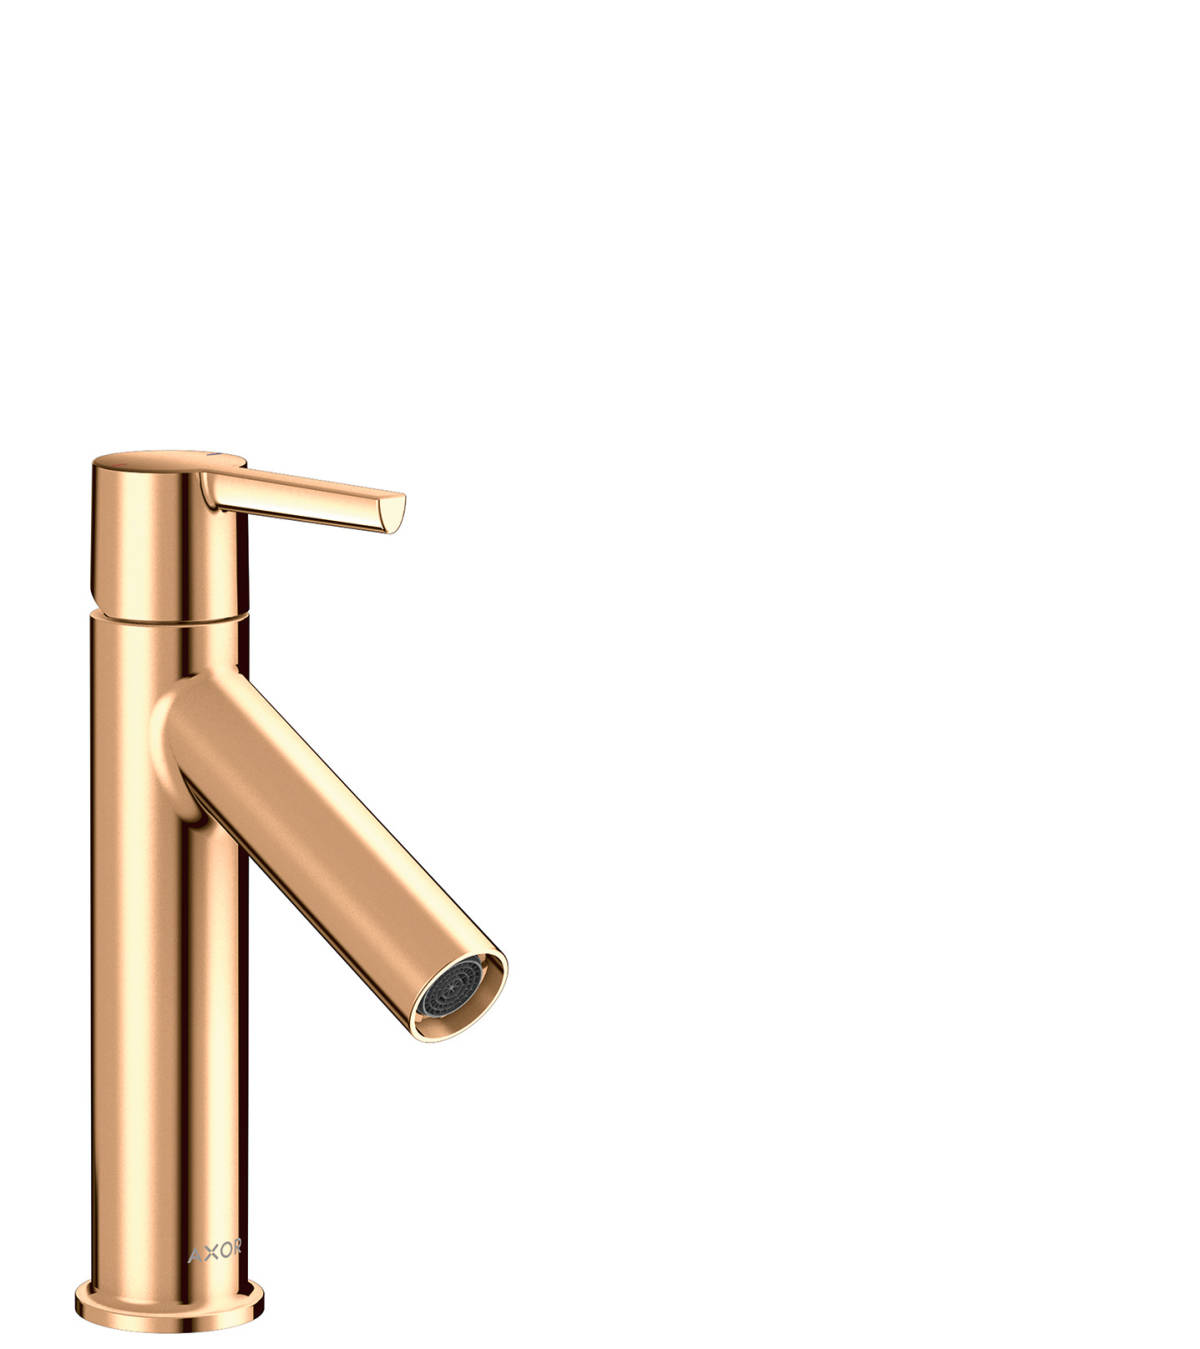 Single lever basin mixer 100 with lever handle and waste set, Polished Bronze, 10003130